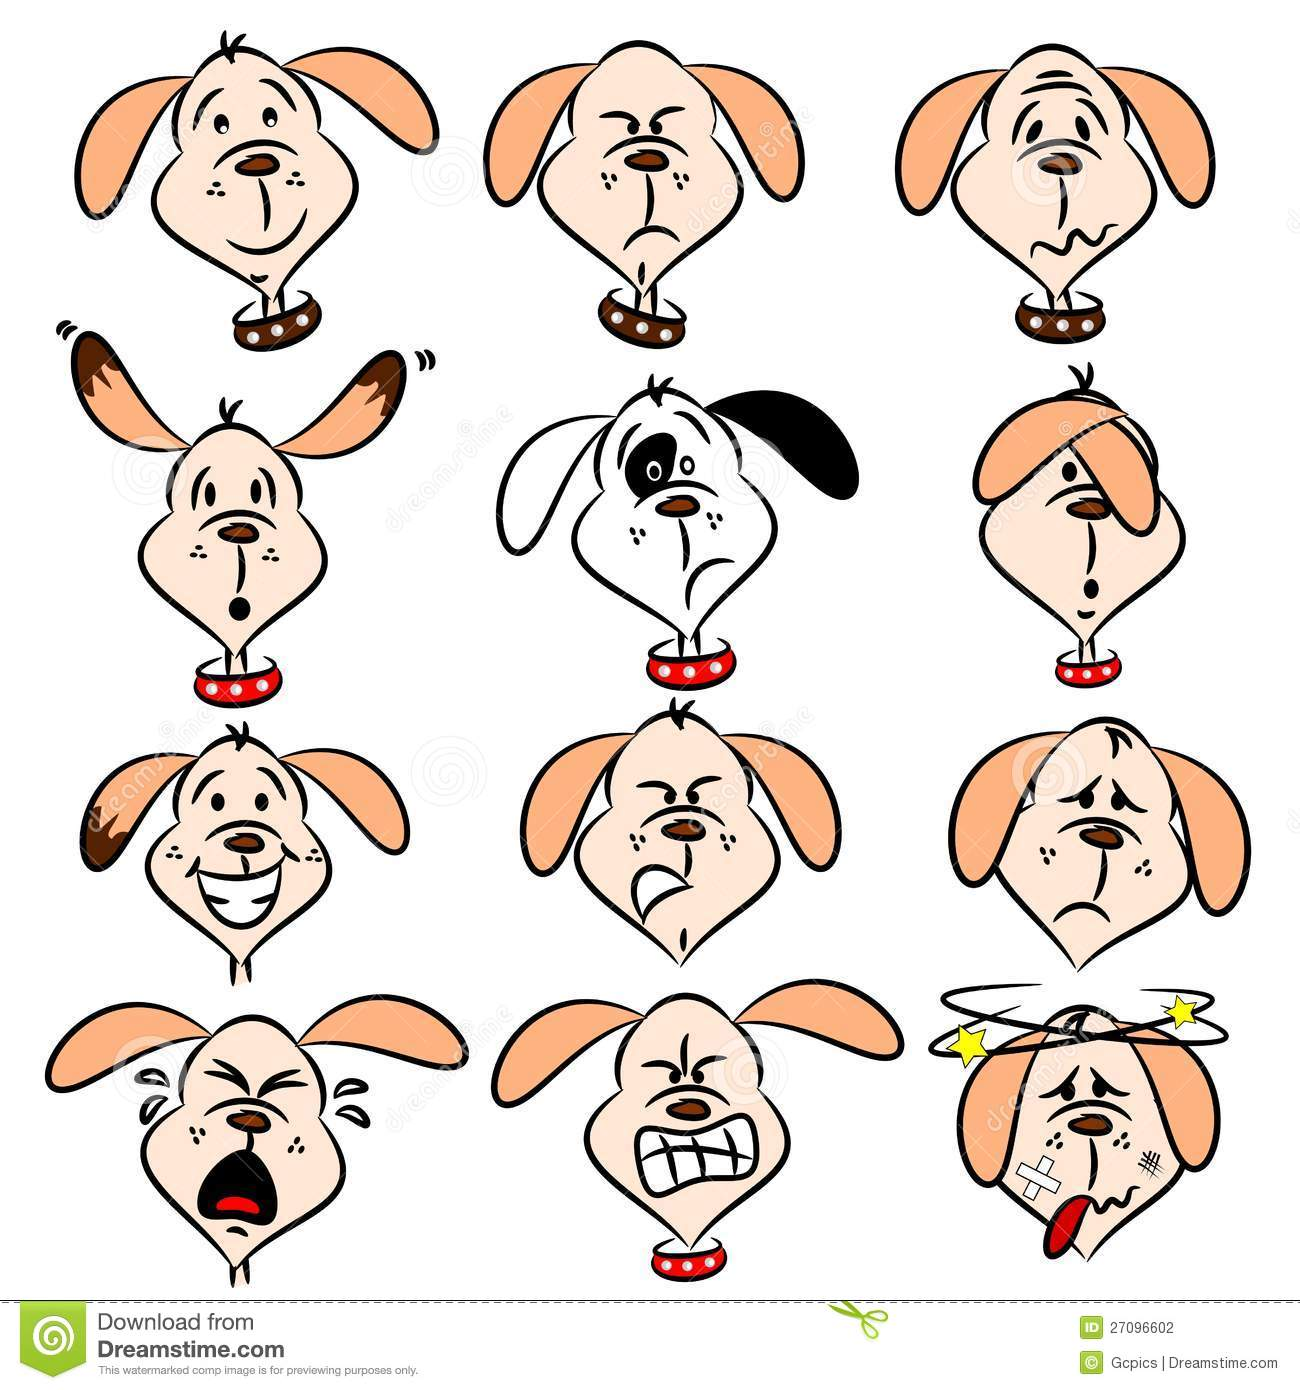 Cartoon Dog Facial Expressions Stock Photography - Image: 27096602